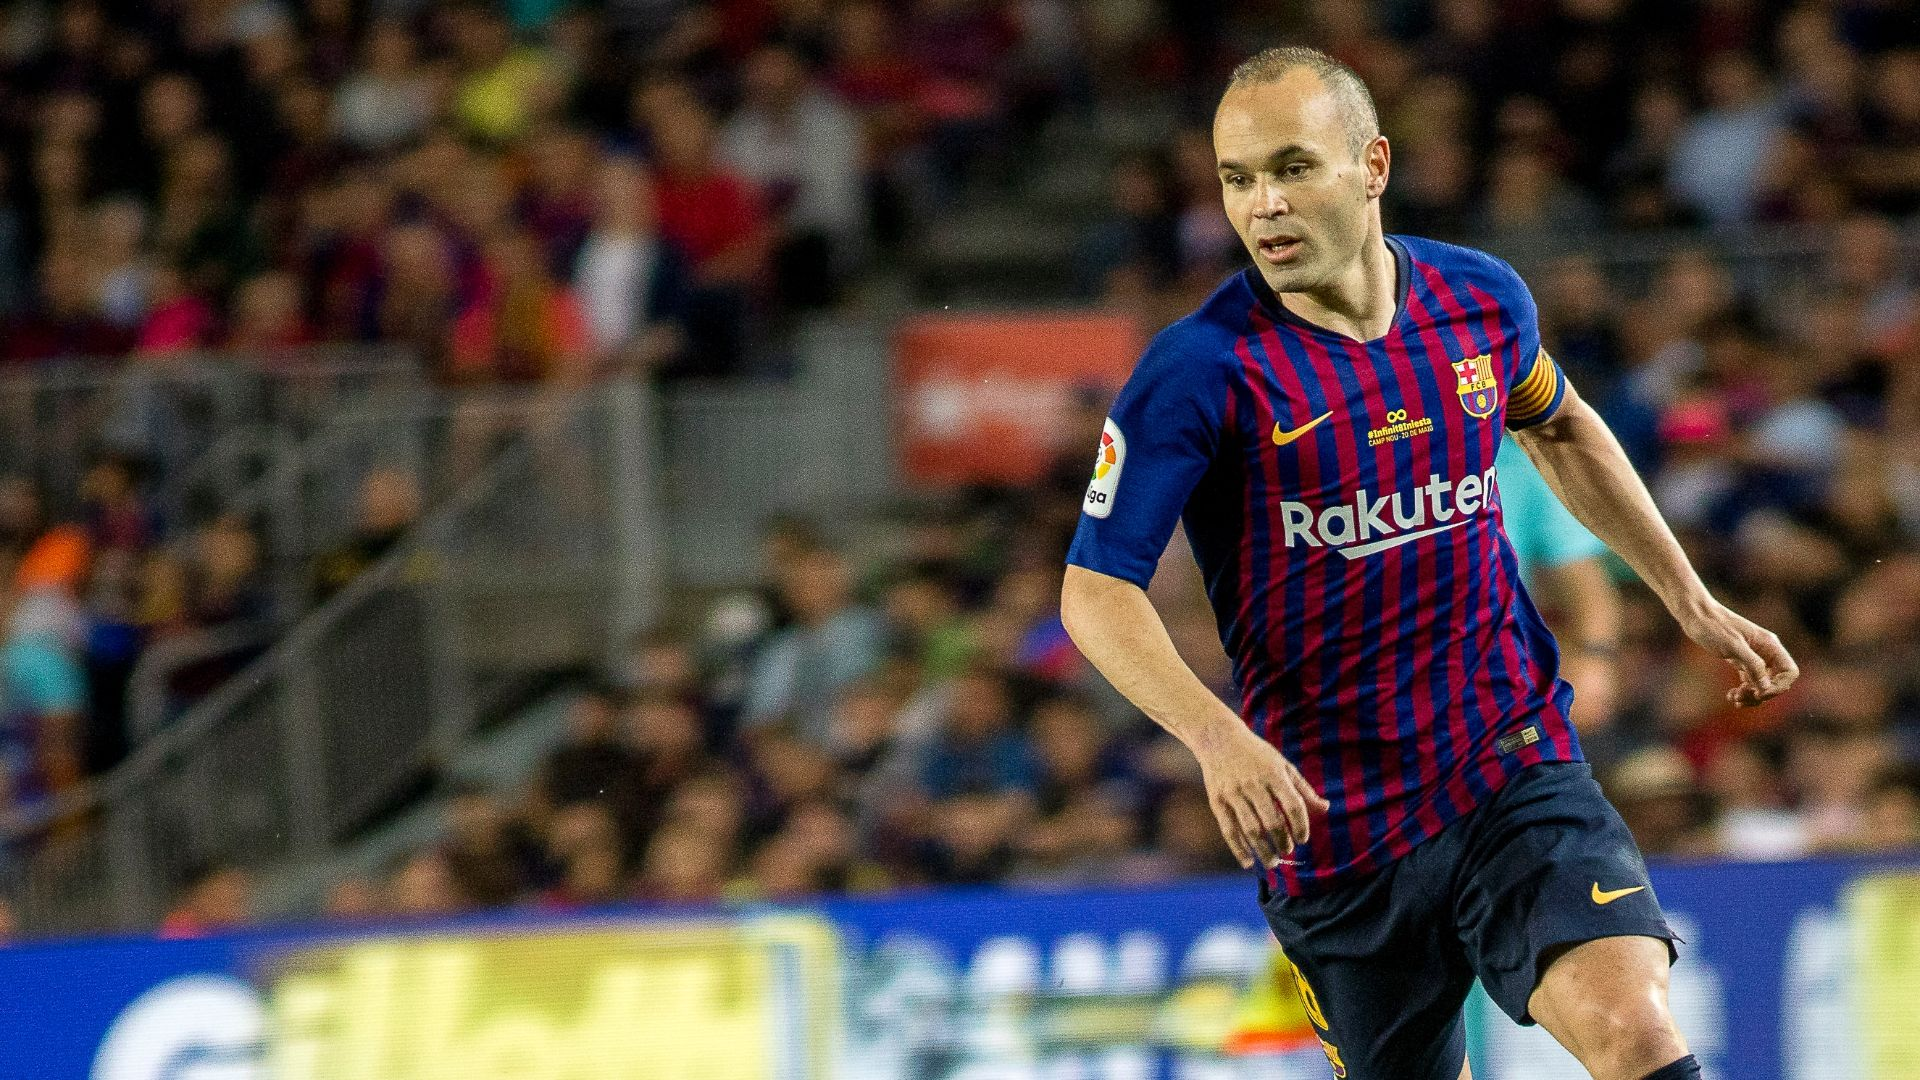 Andres Iniesta bids farewell to Barcelona: 'It's been a pleasure'